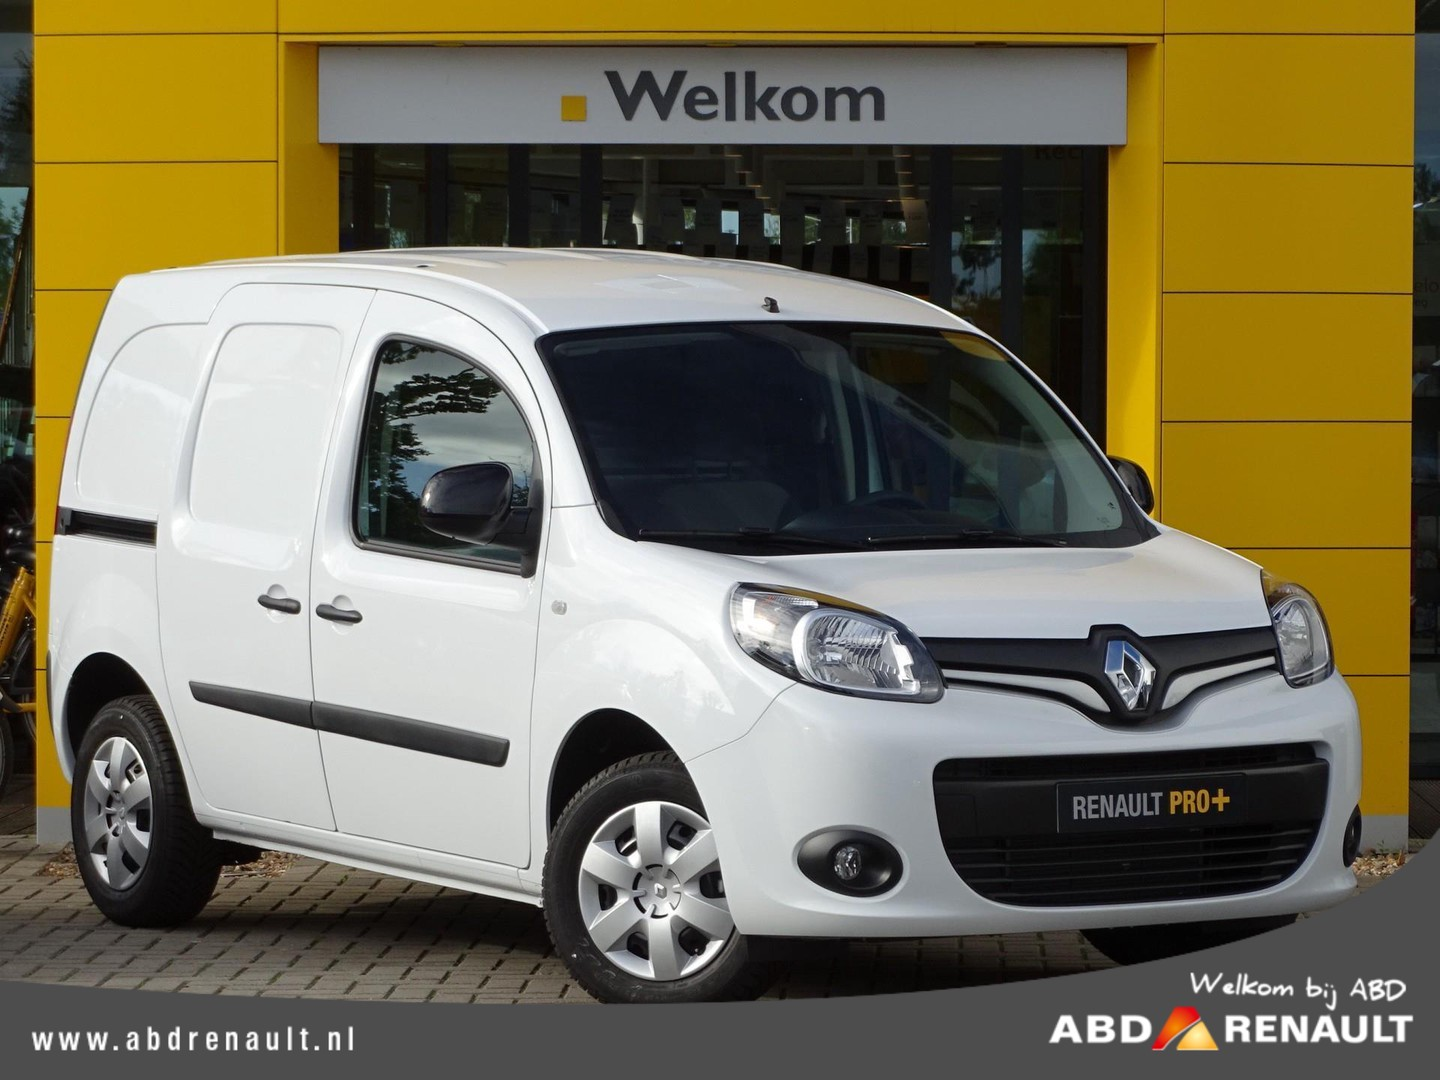 Renault Kangoo 1.5 blue dci 95pk work edition financieren tegen 0% rente!